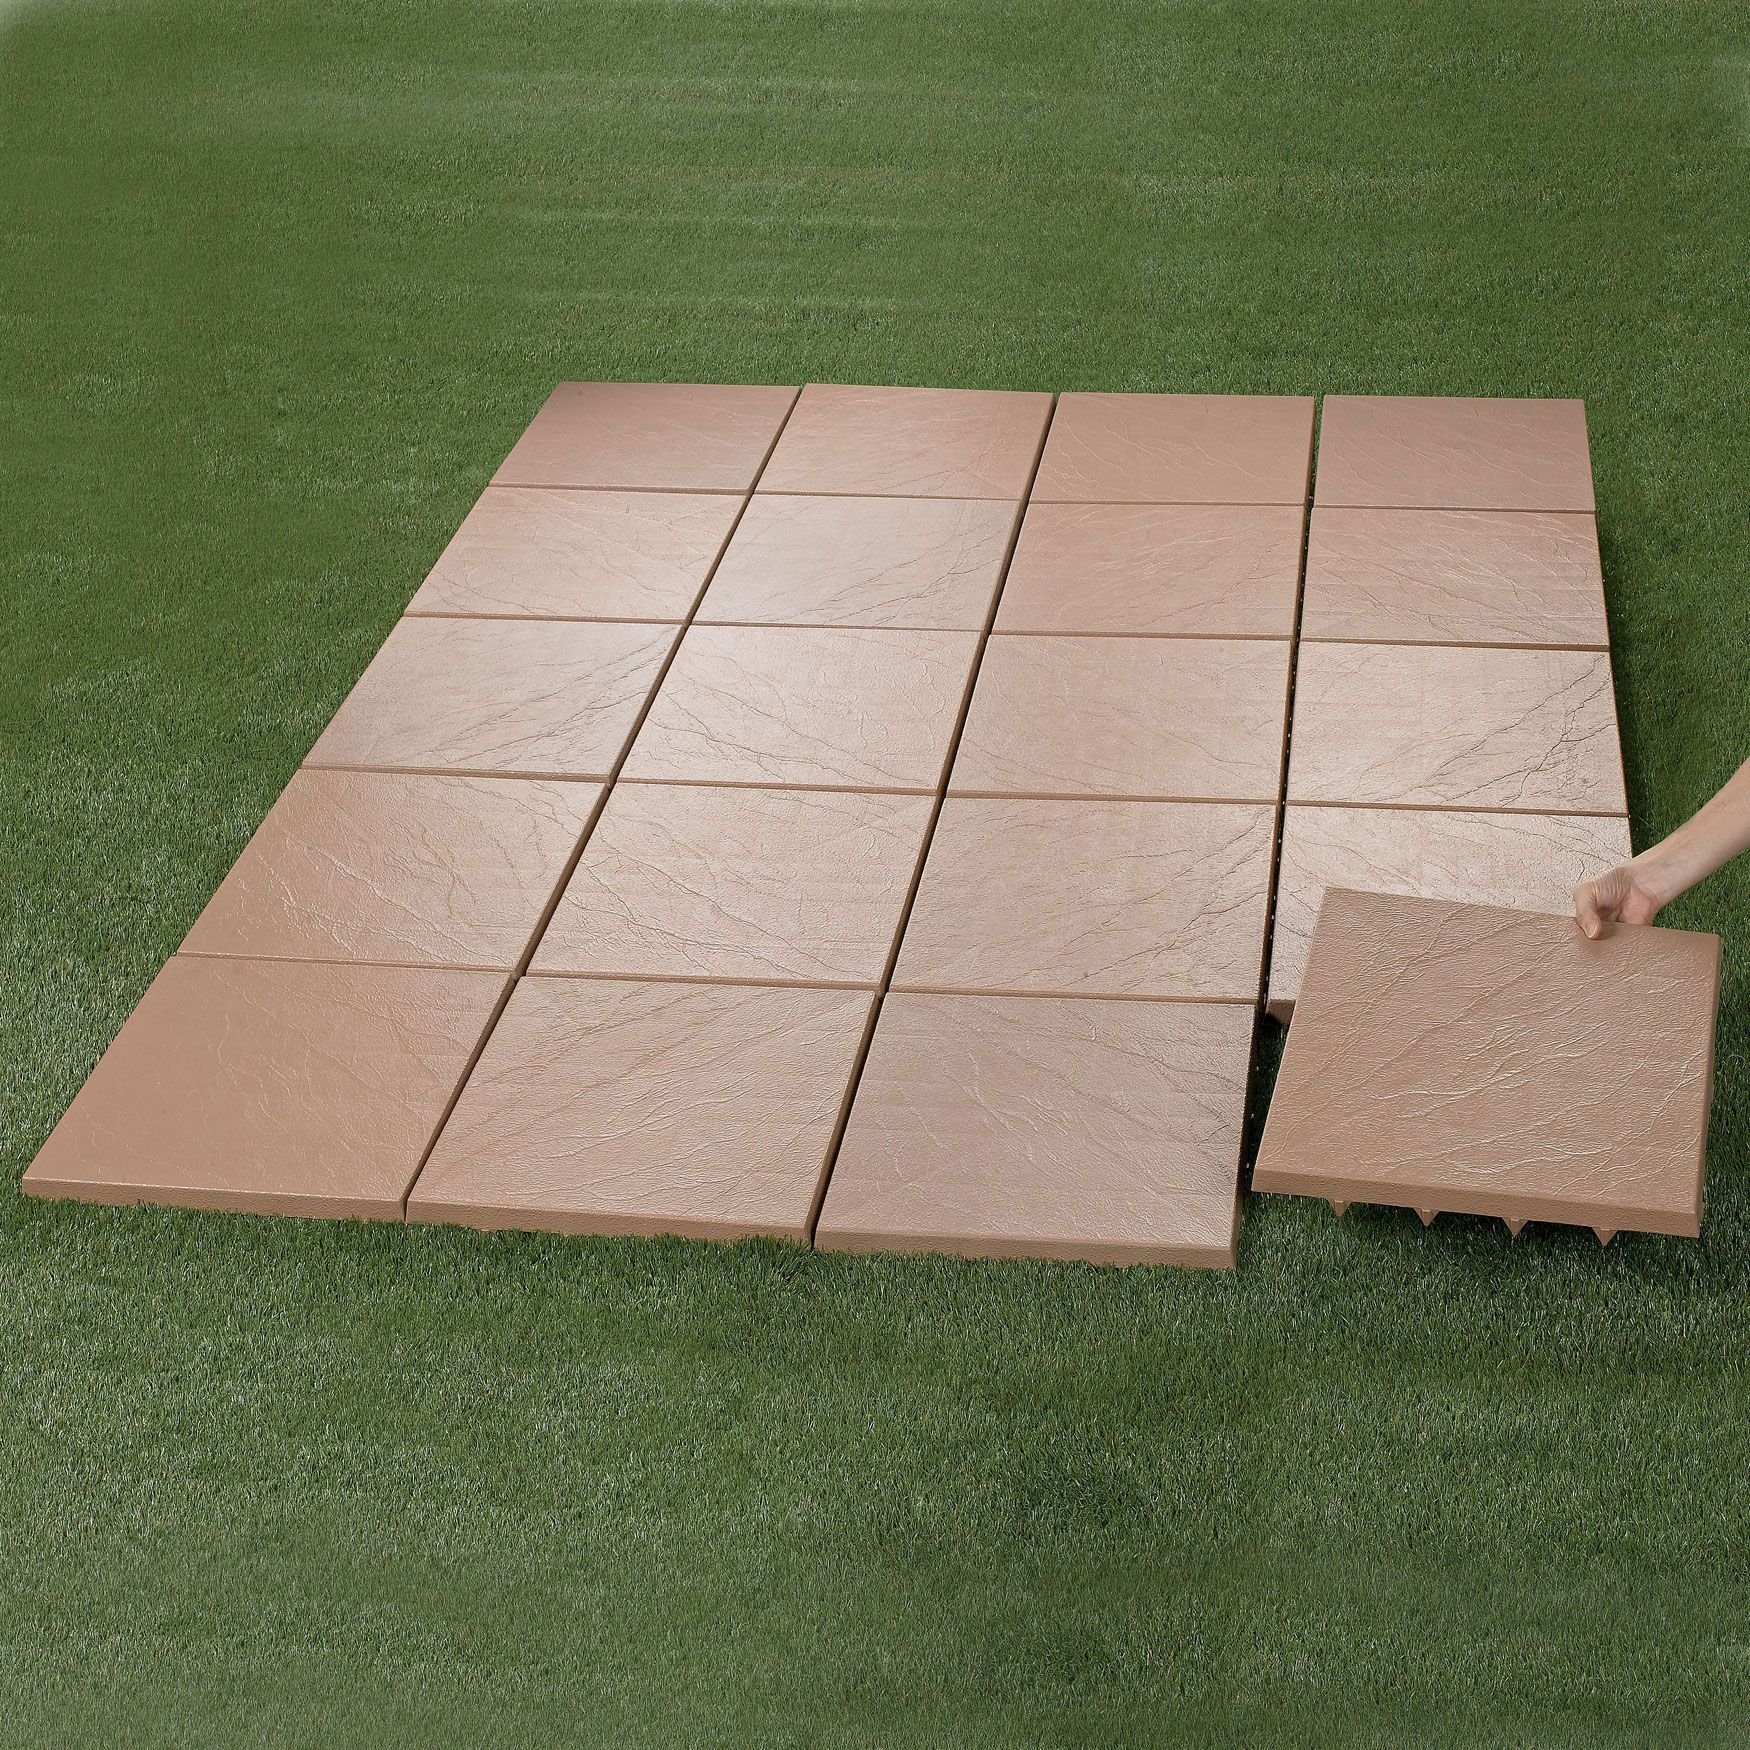 Instant Decking Panels : Create an instant patio on any grass dirt or sand surface